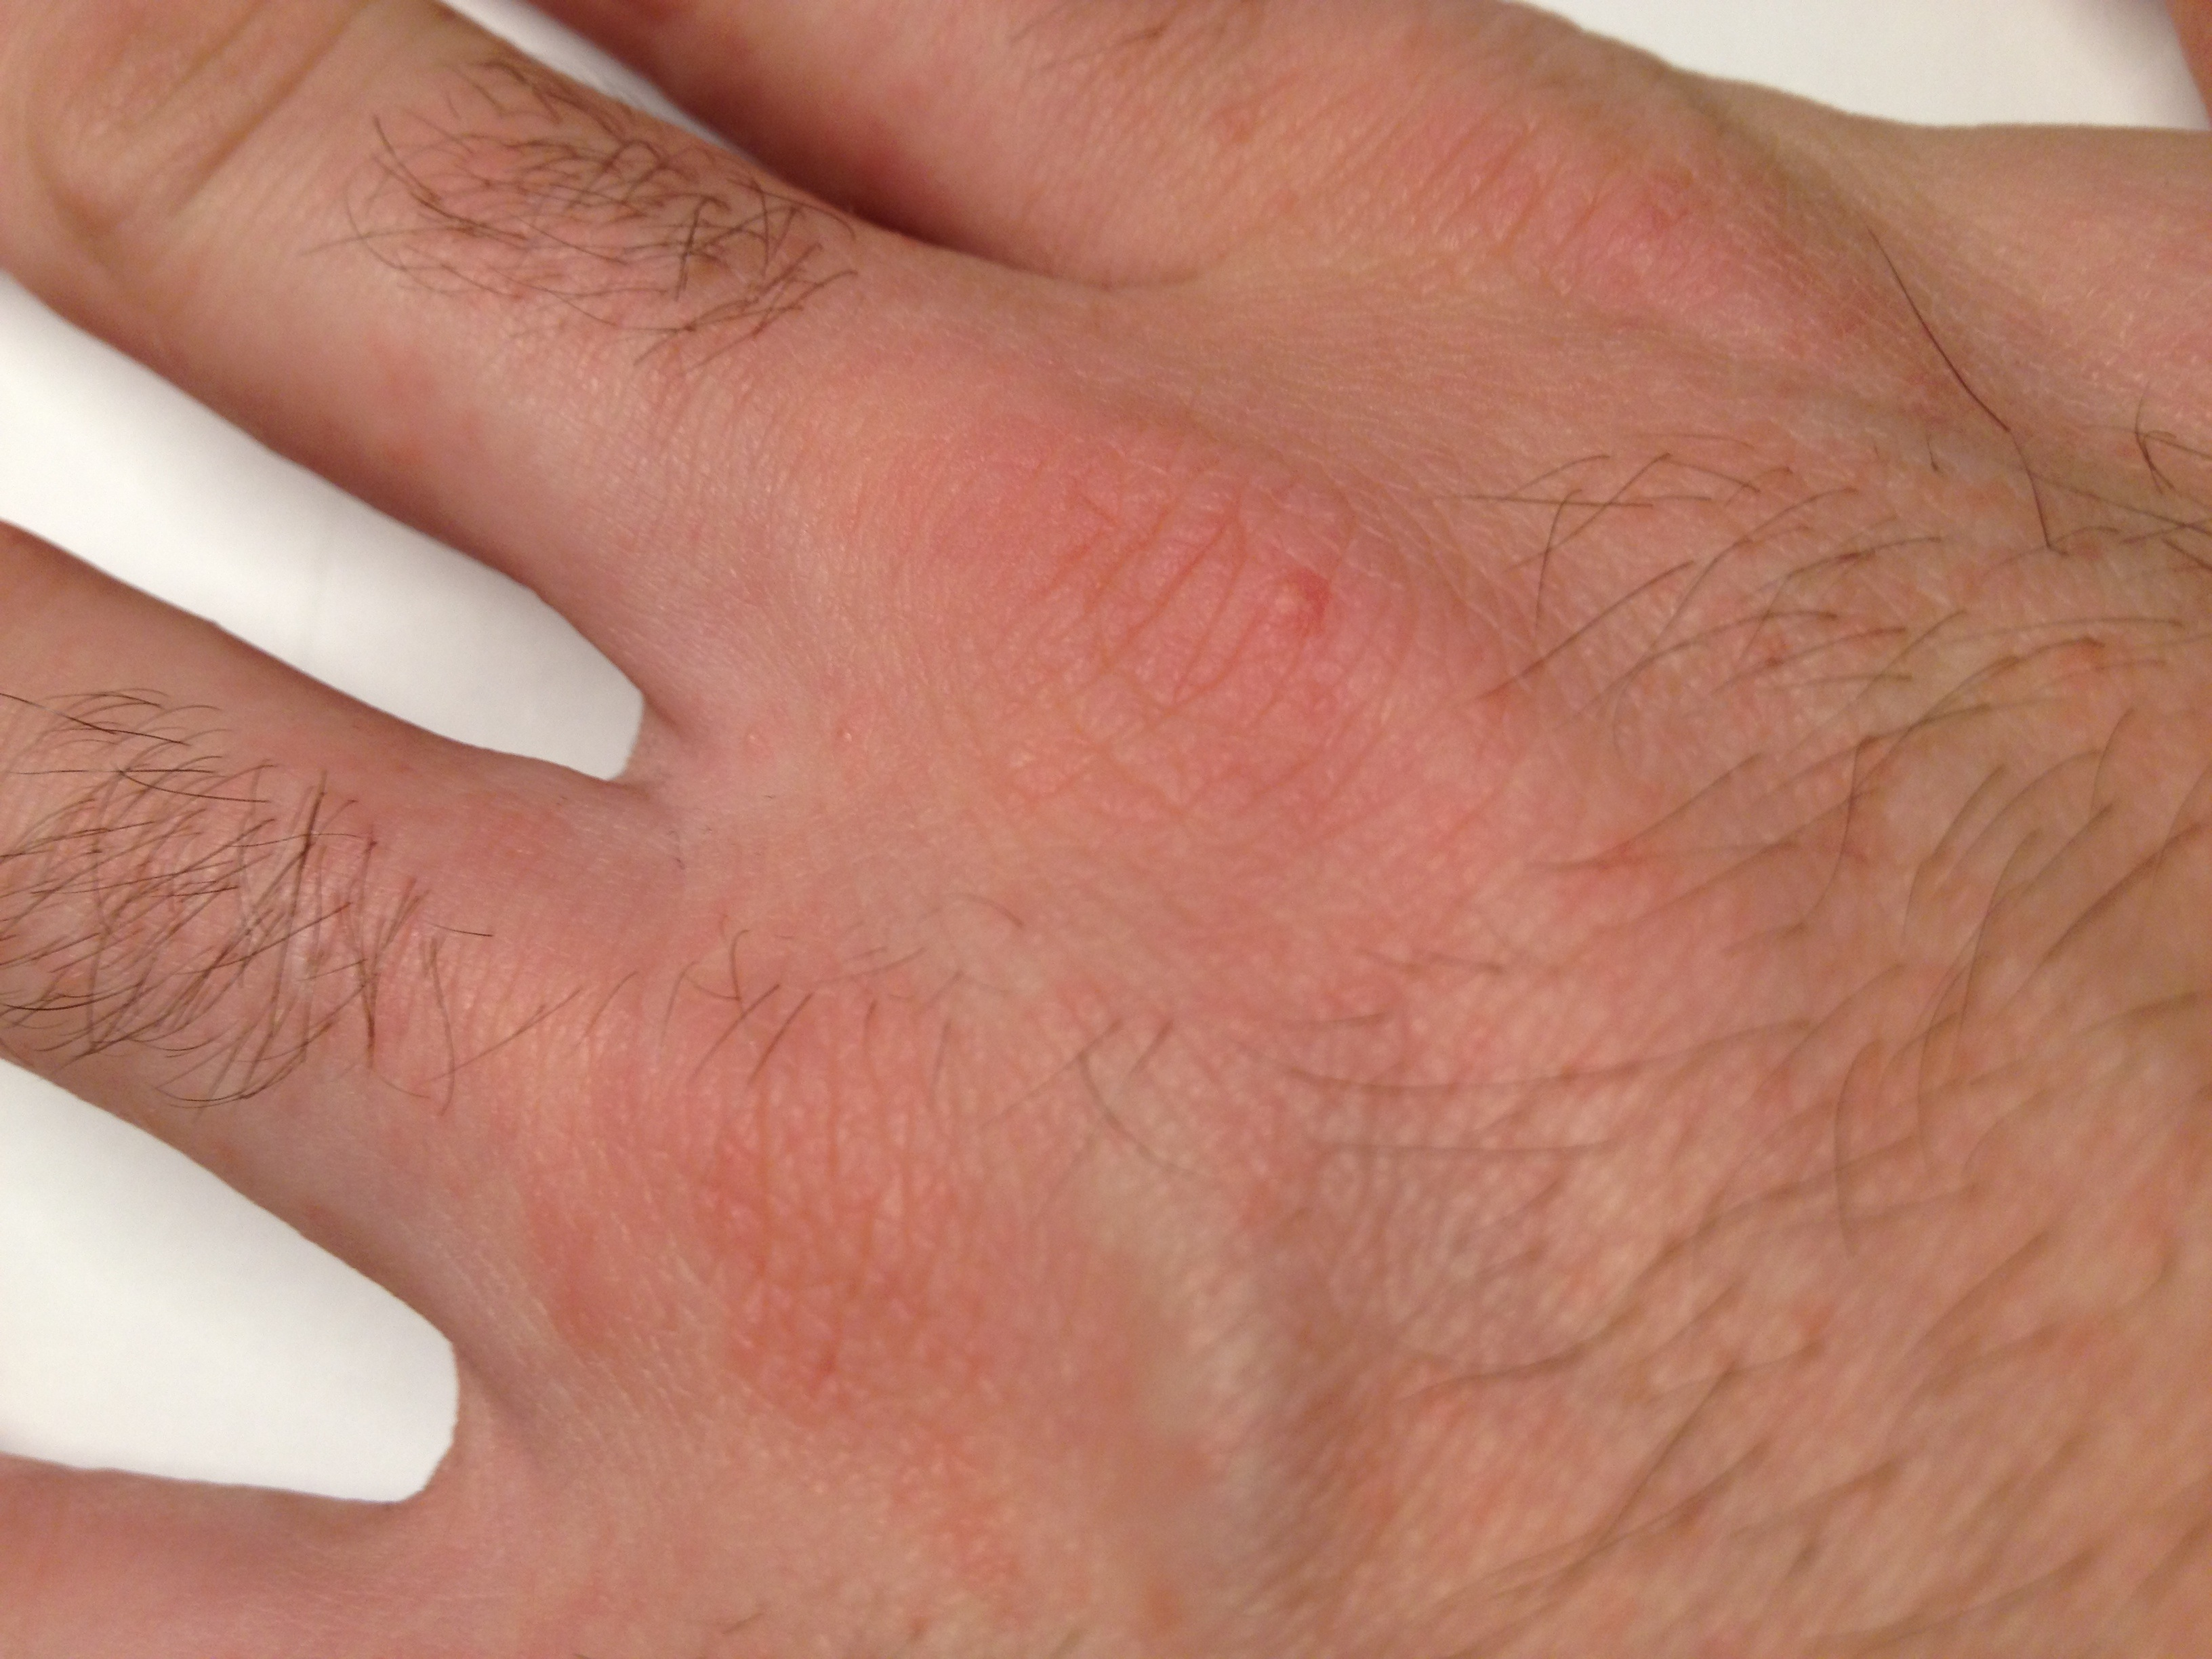 COMPLETE information about Rashes - Ashish Sharma - Hpathy.com